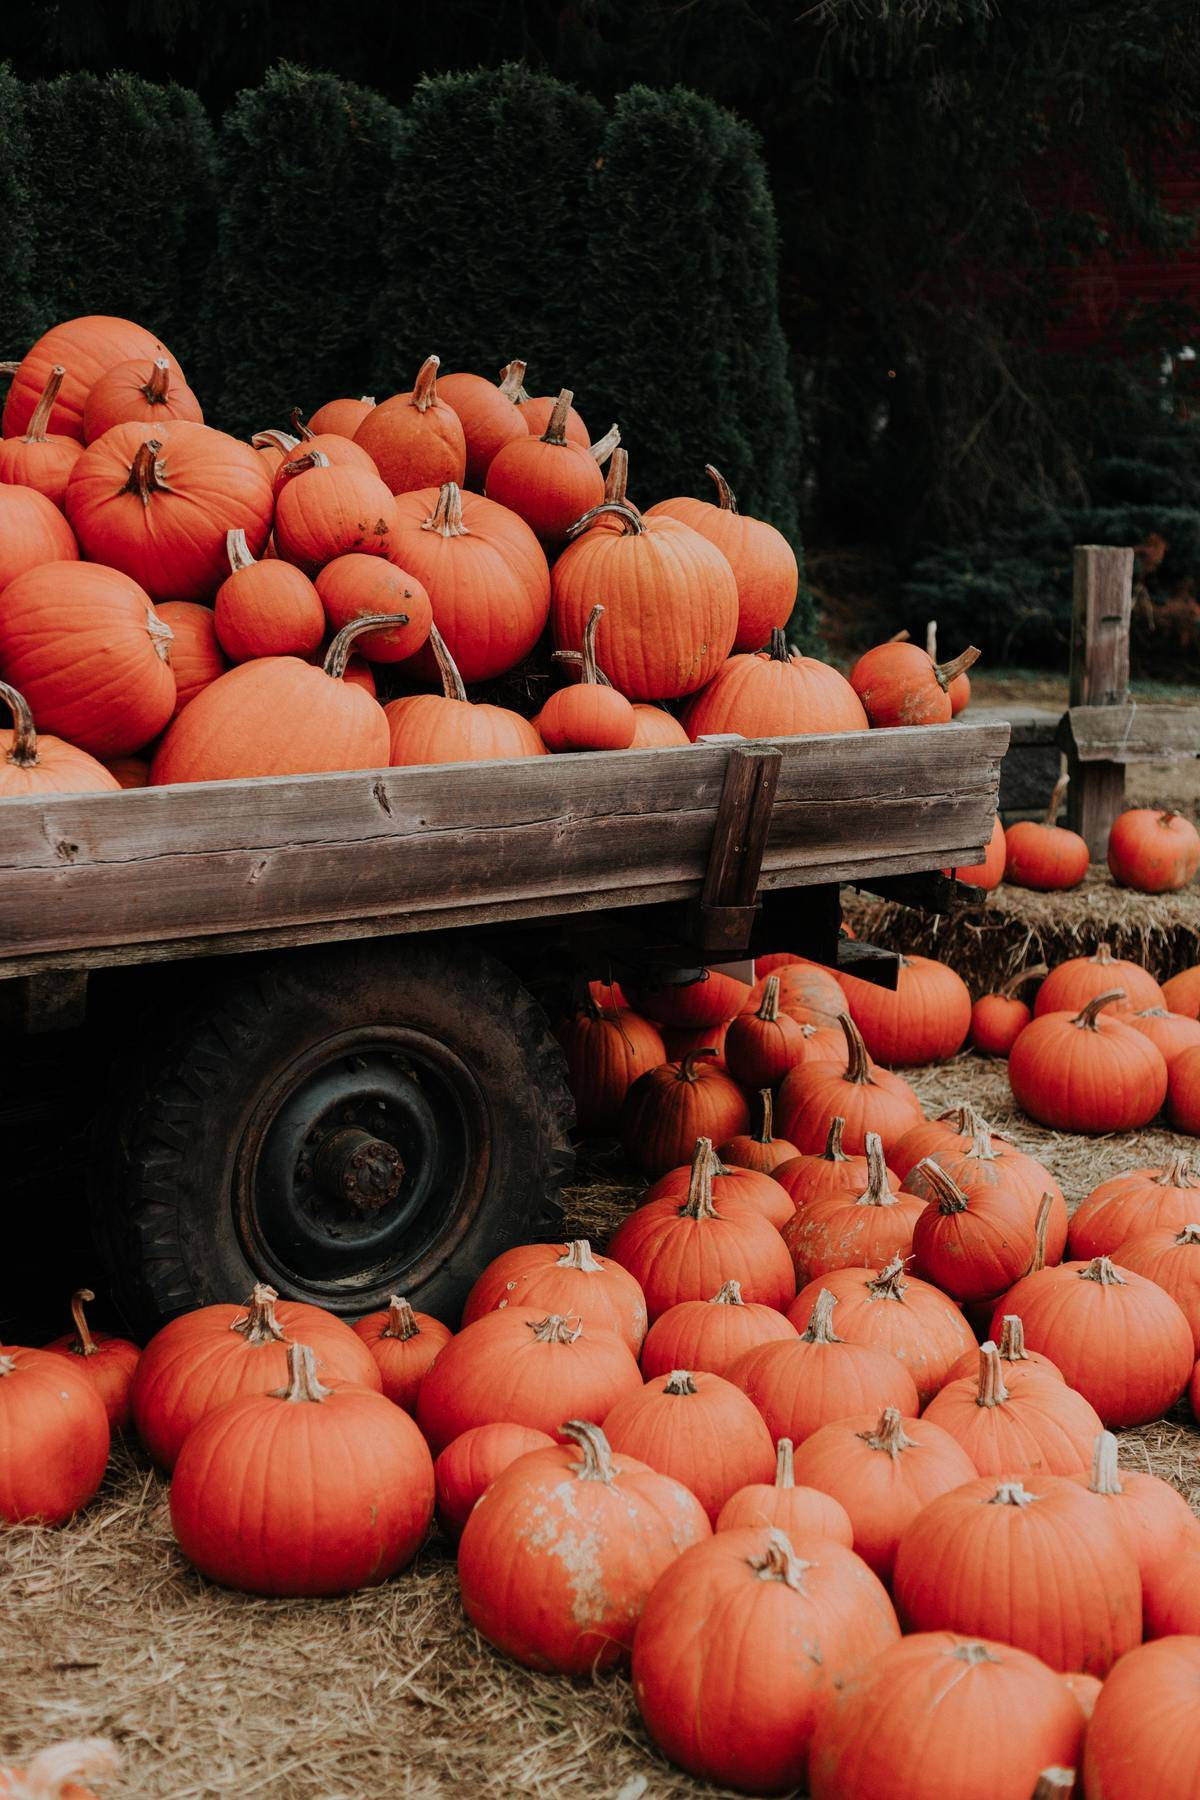 Pumpkin patch with truck bed full